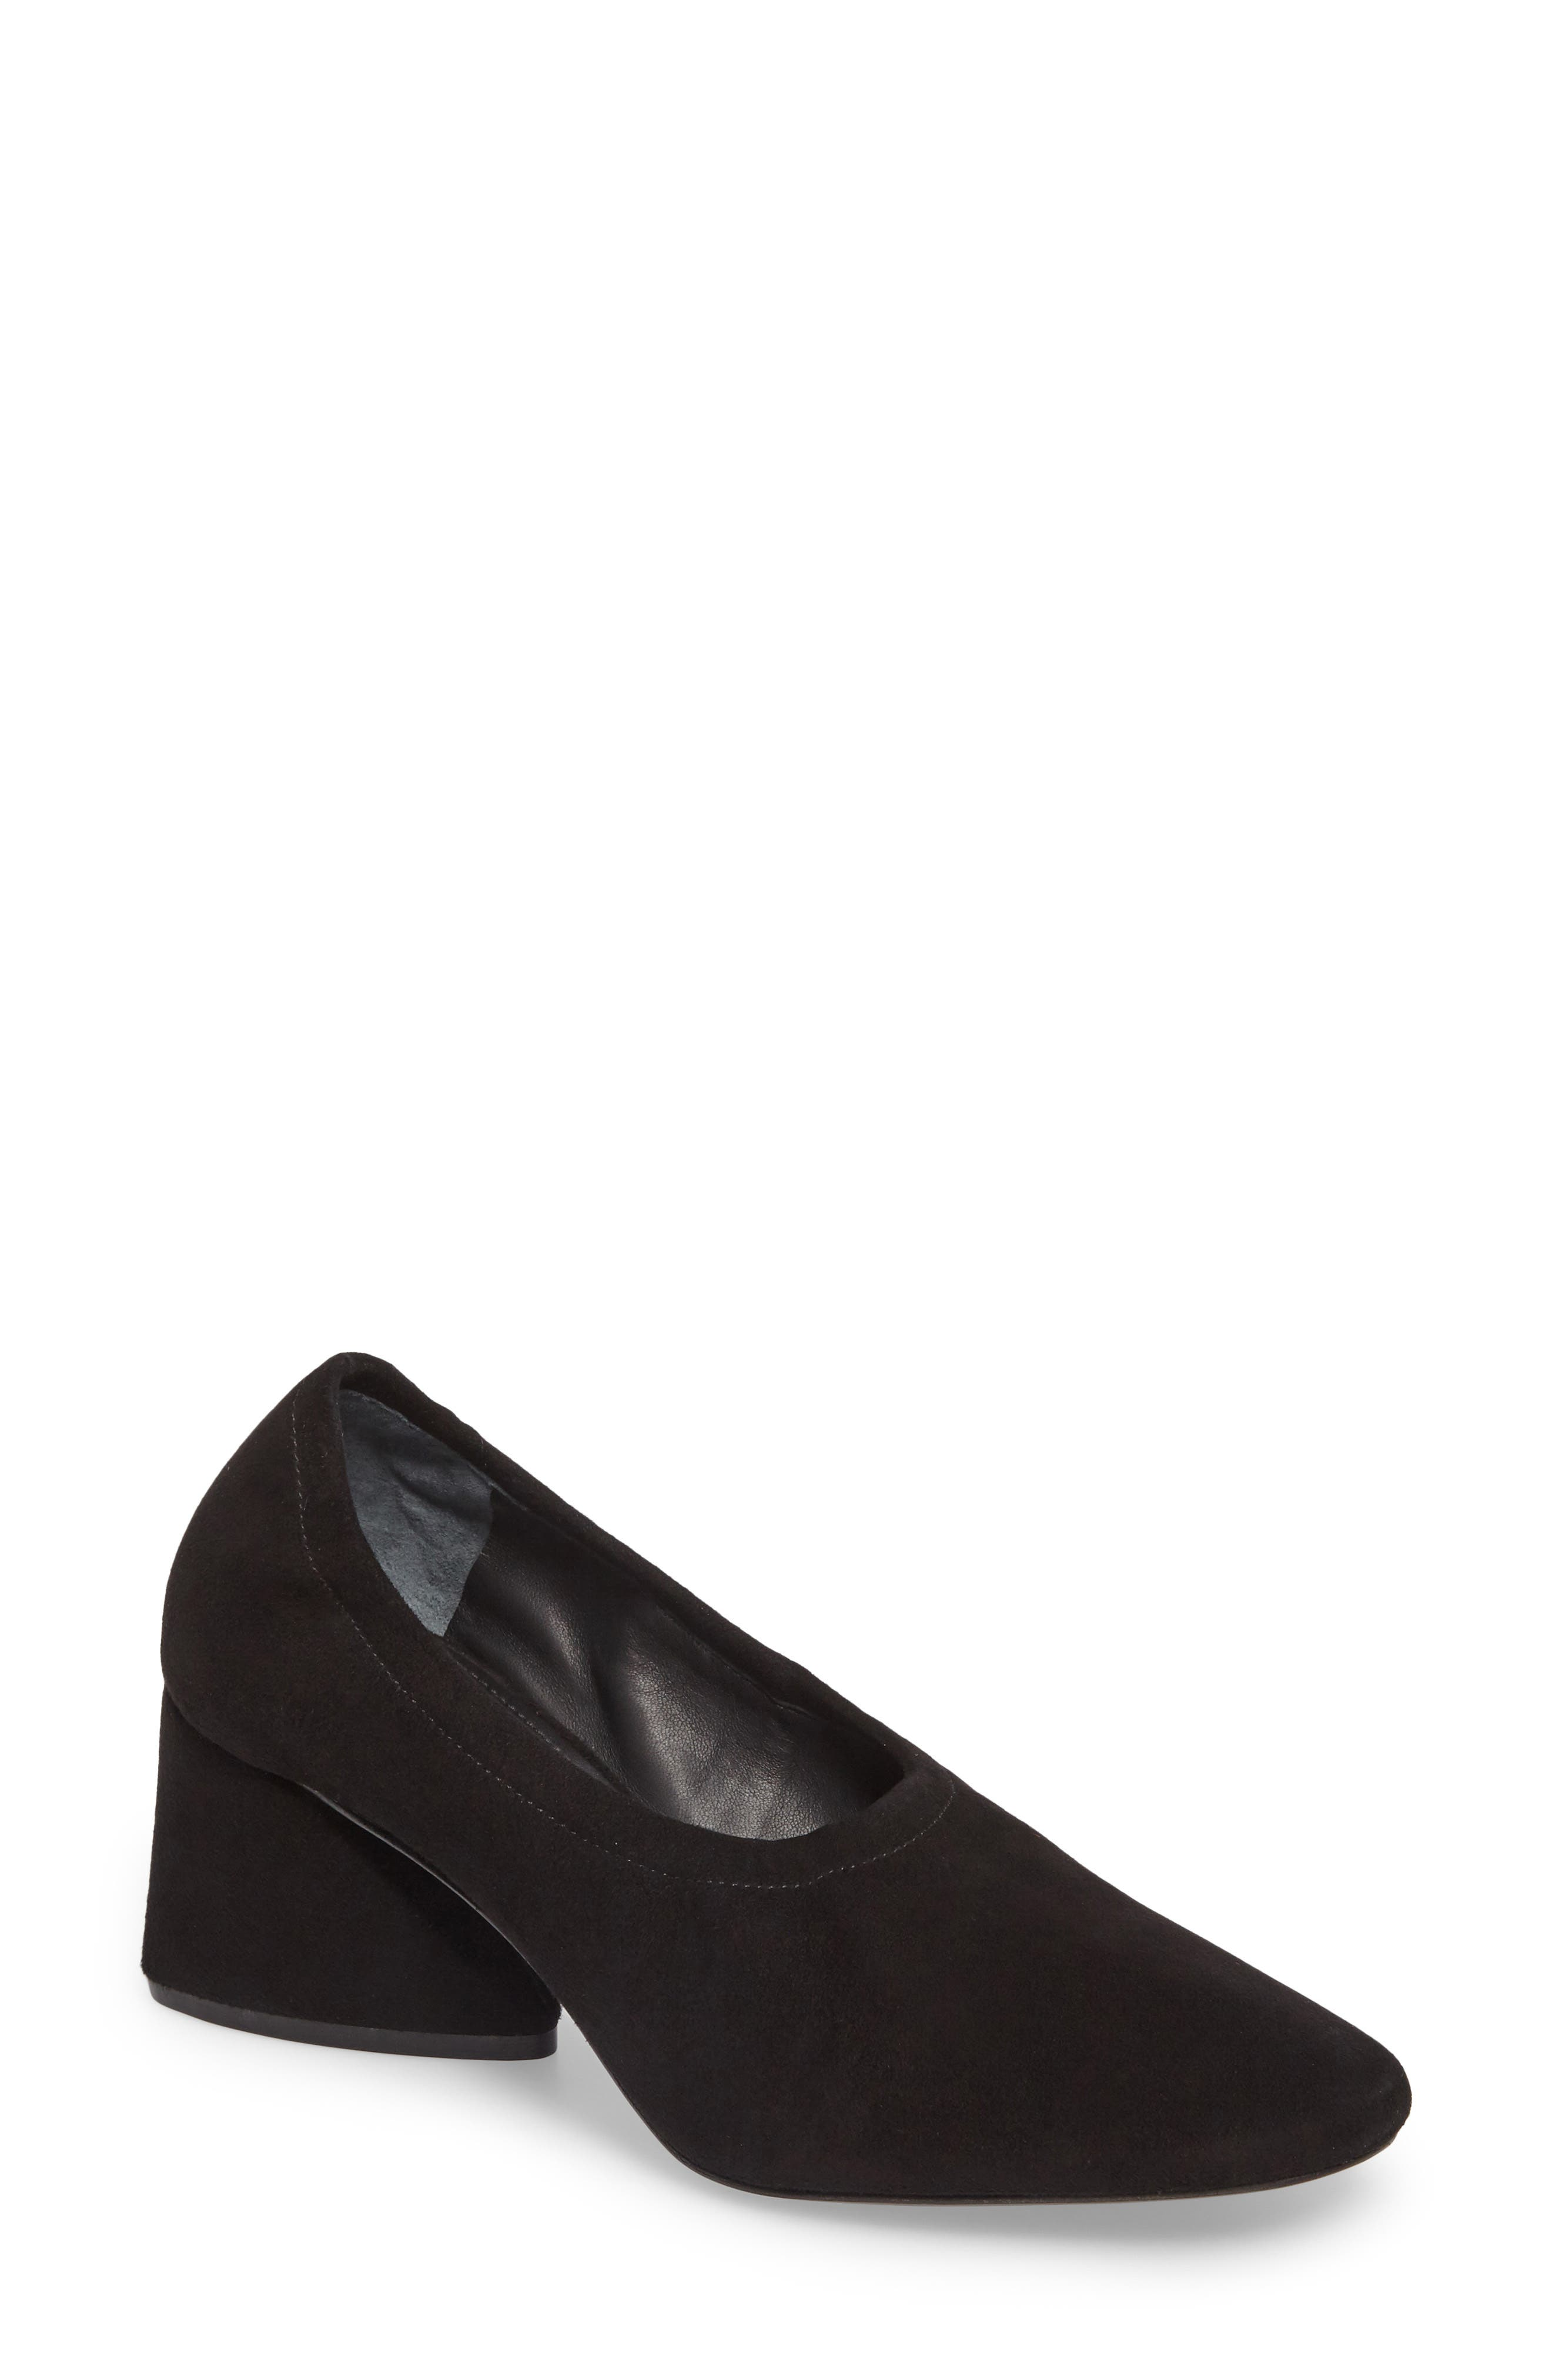 Emilia Pump,                         Main,                         color, Black Suede